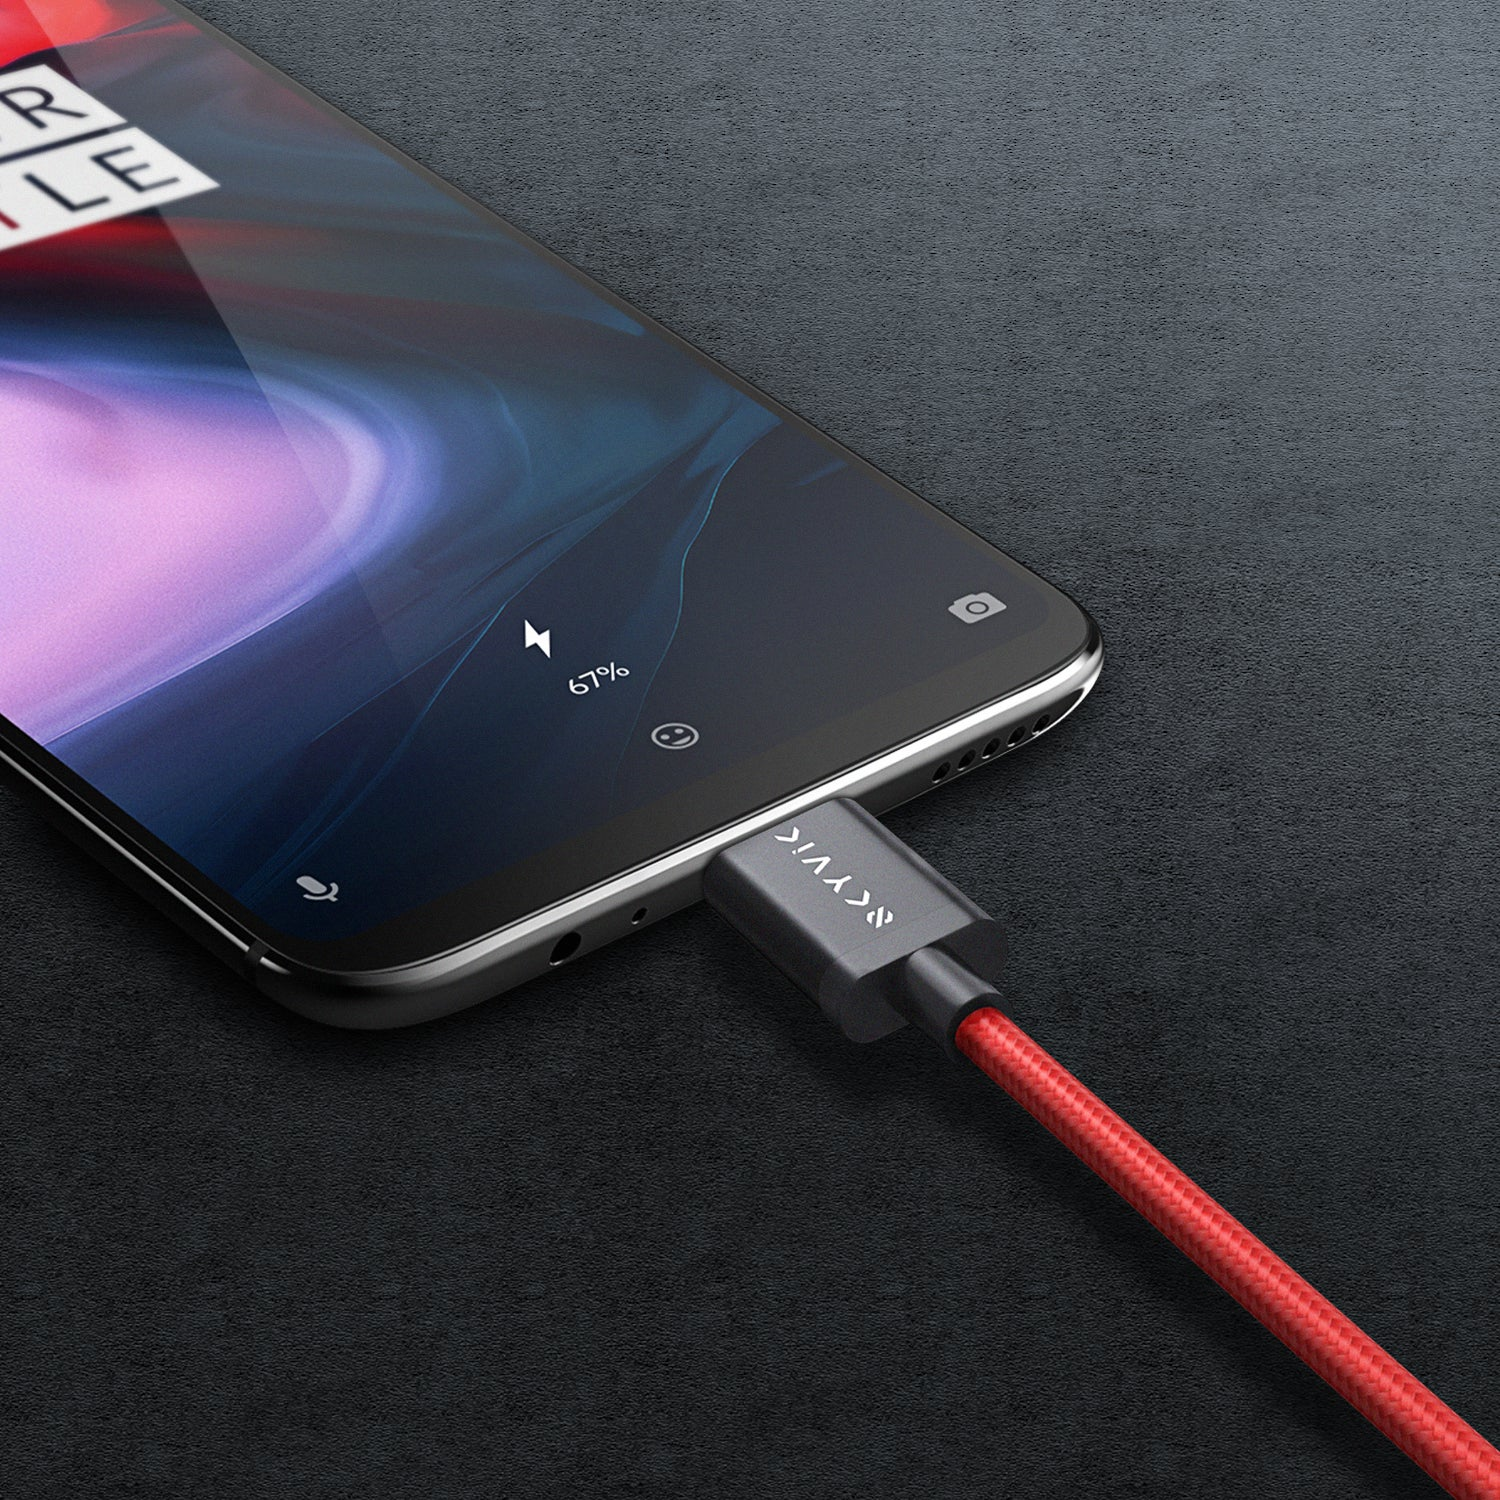 Blaze Nylon Braided Type C Dash Charging Cable